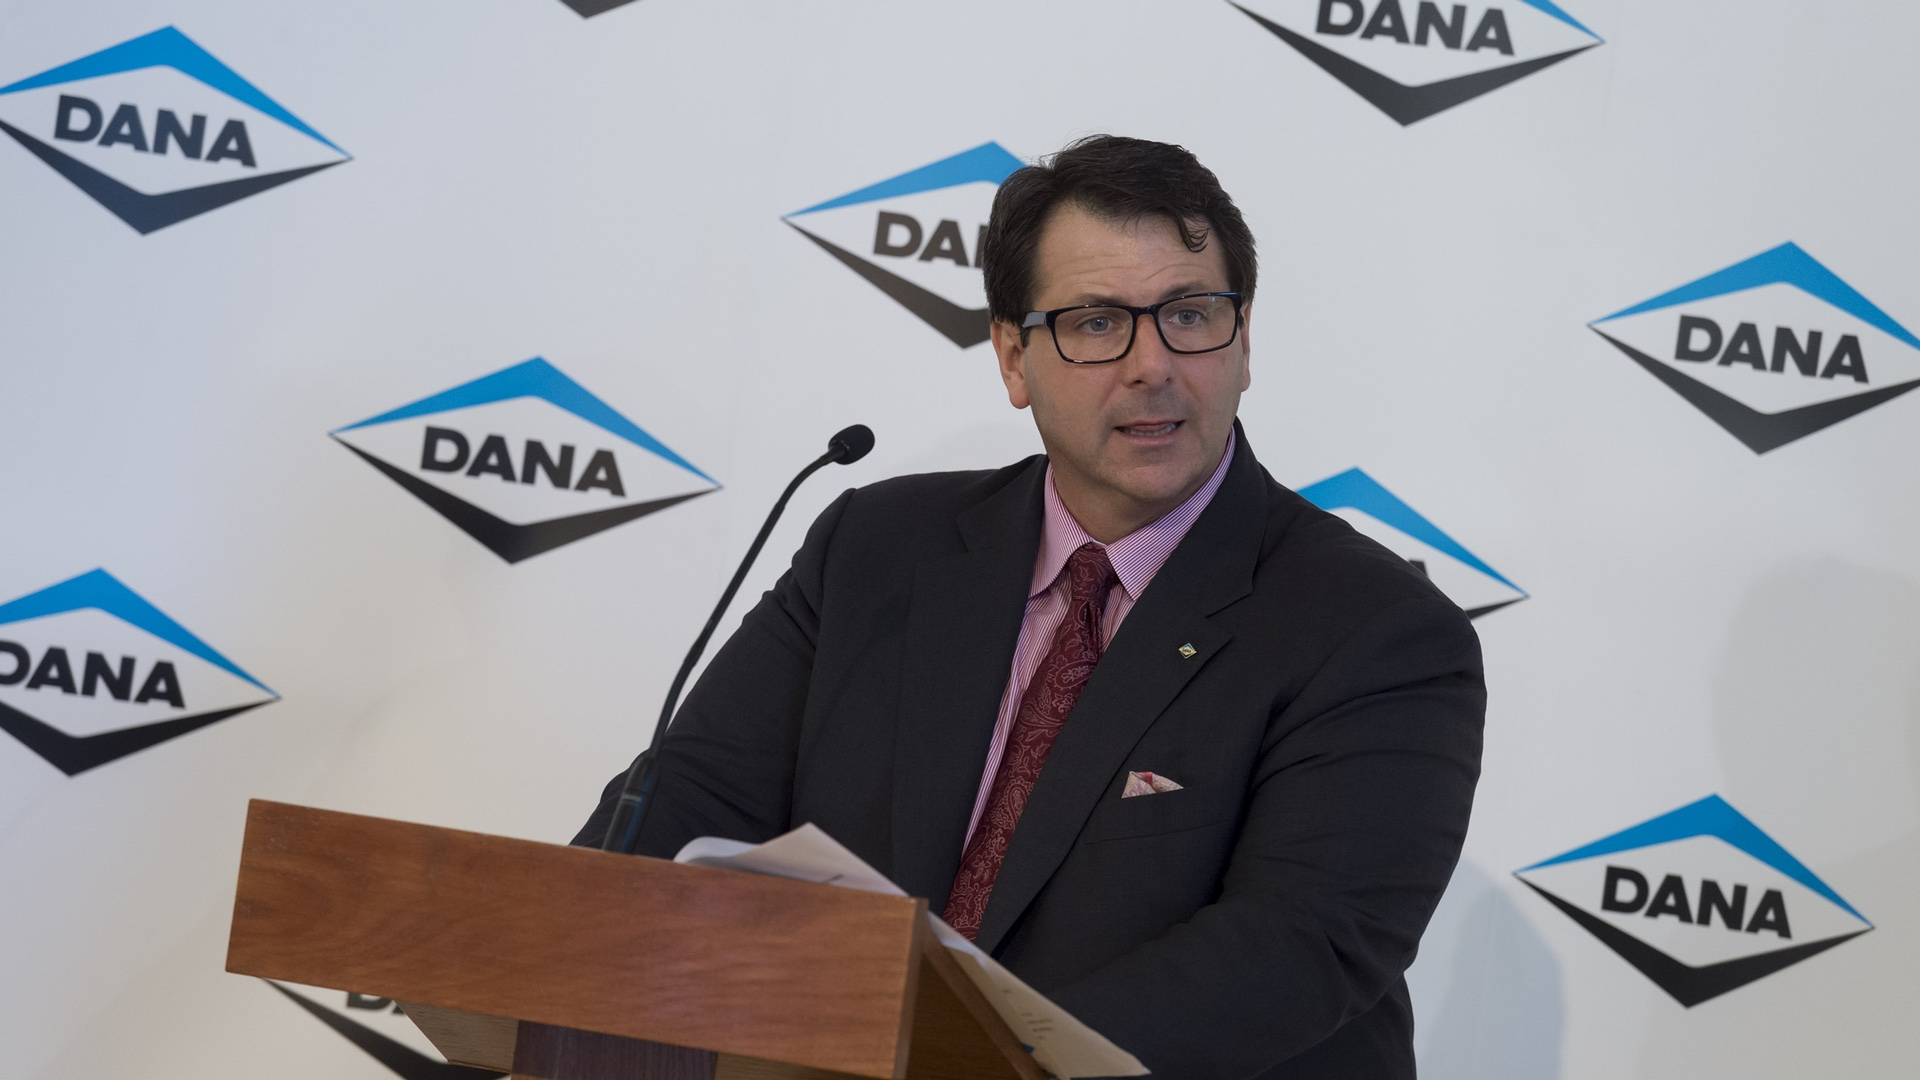 Dana to build new gear manufacturing facility in Hungary